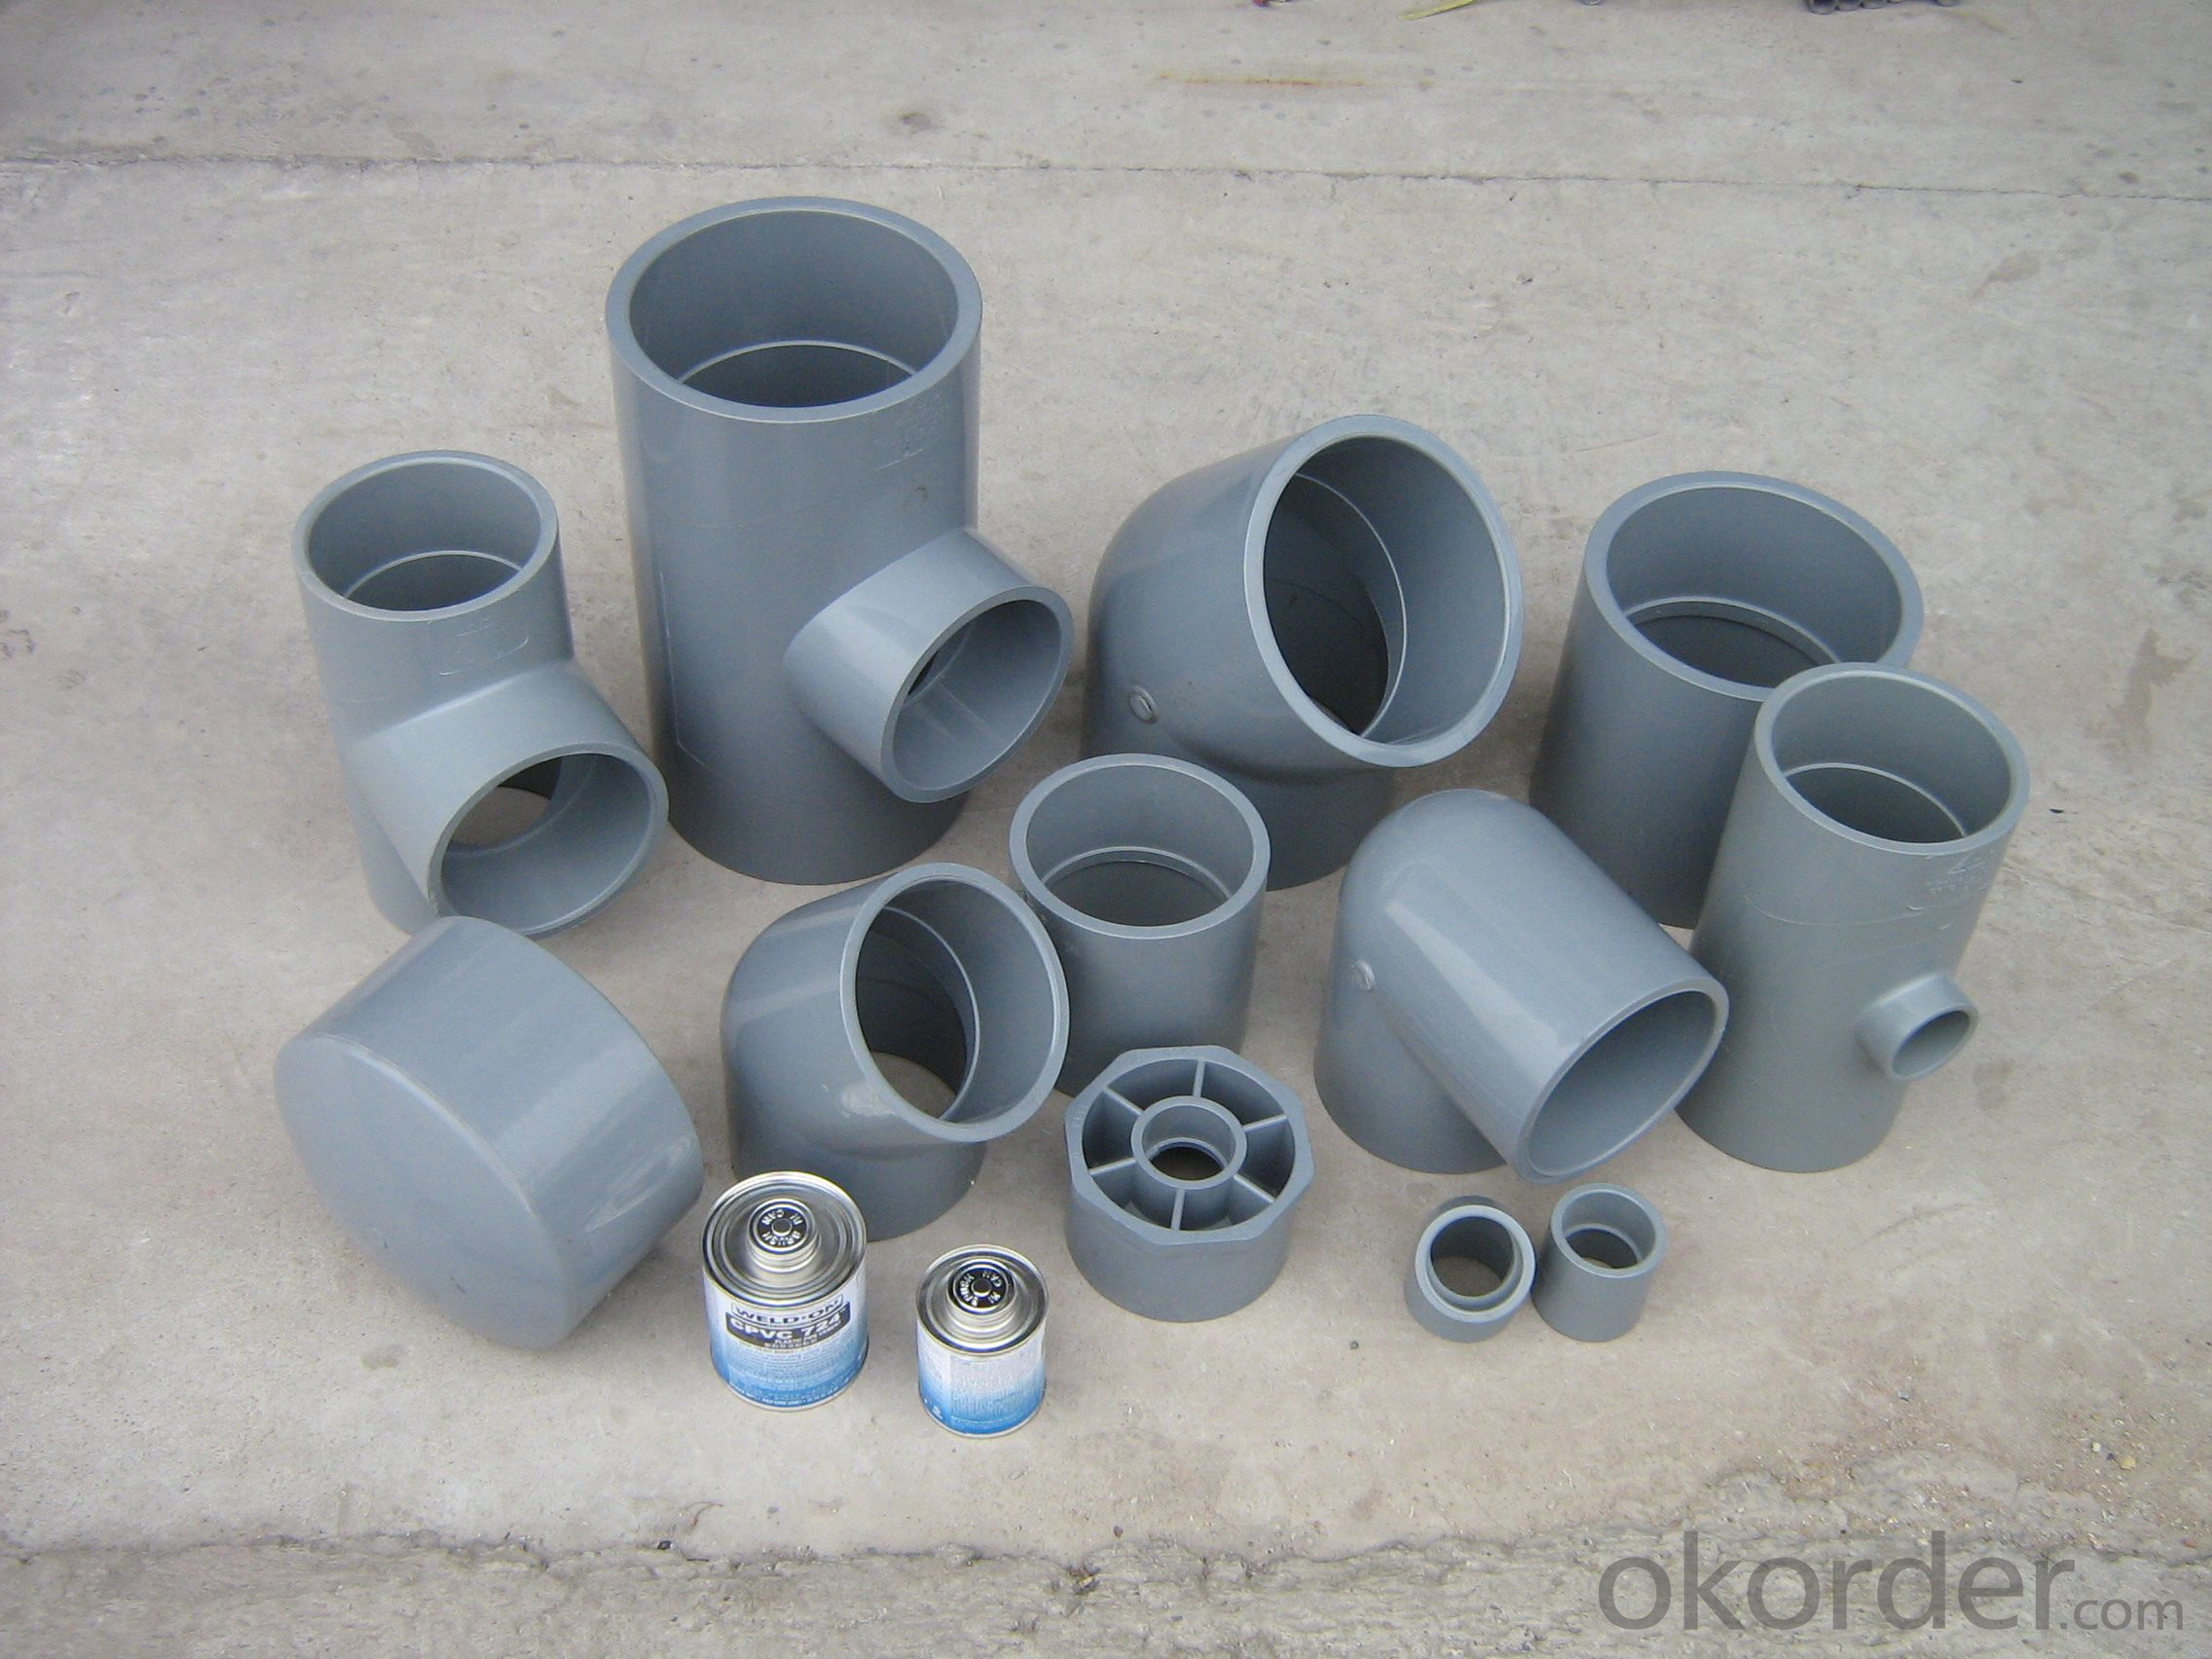 PVC Pressure Pipe GB/T10002.1 2006 on Sale